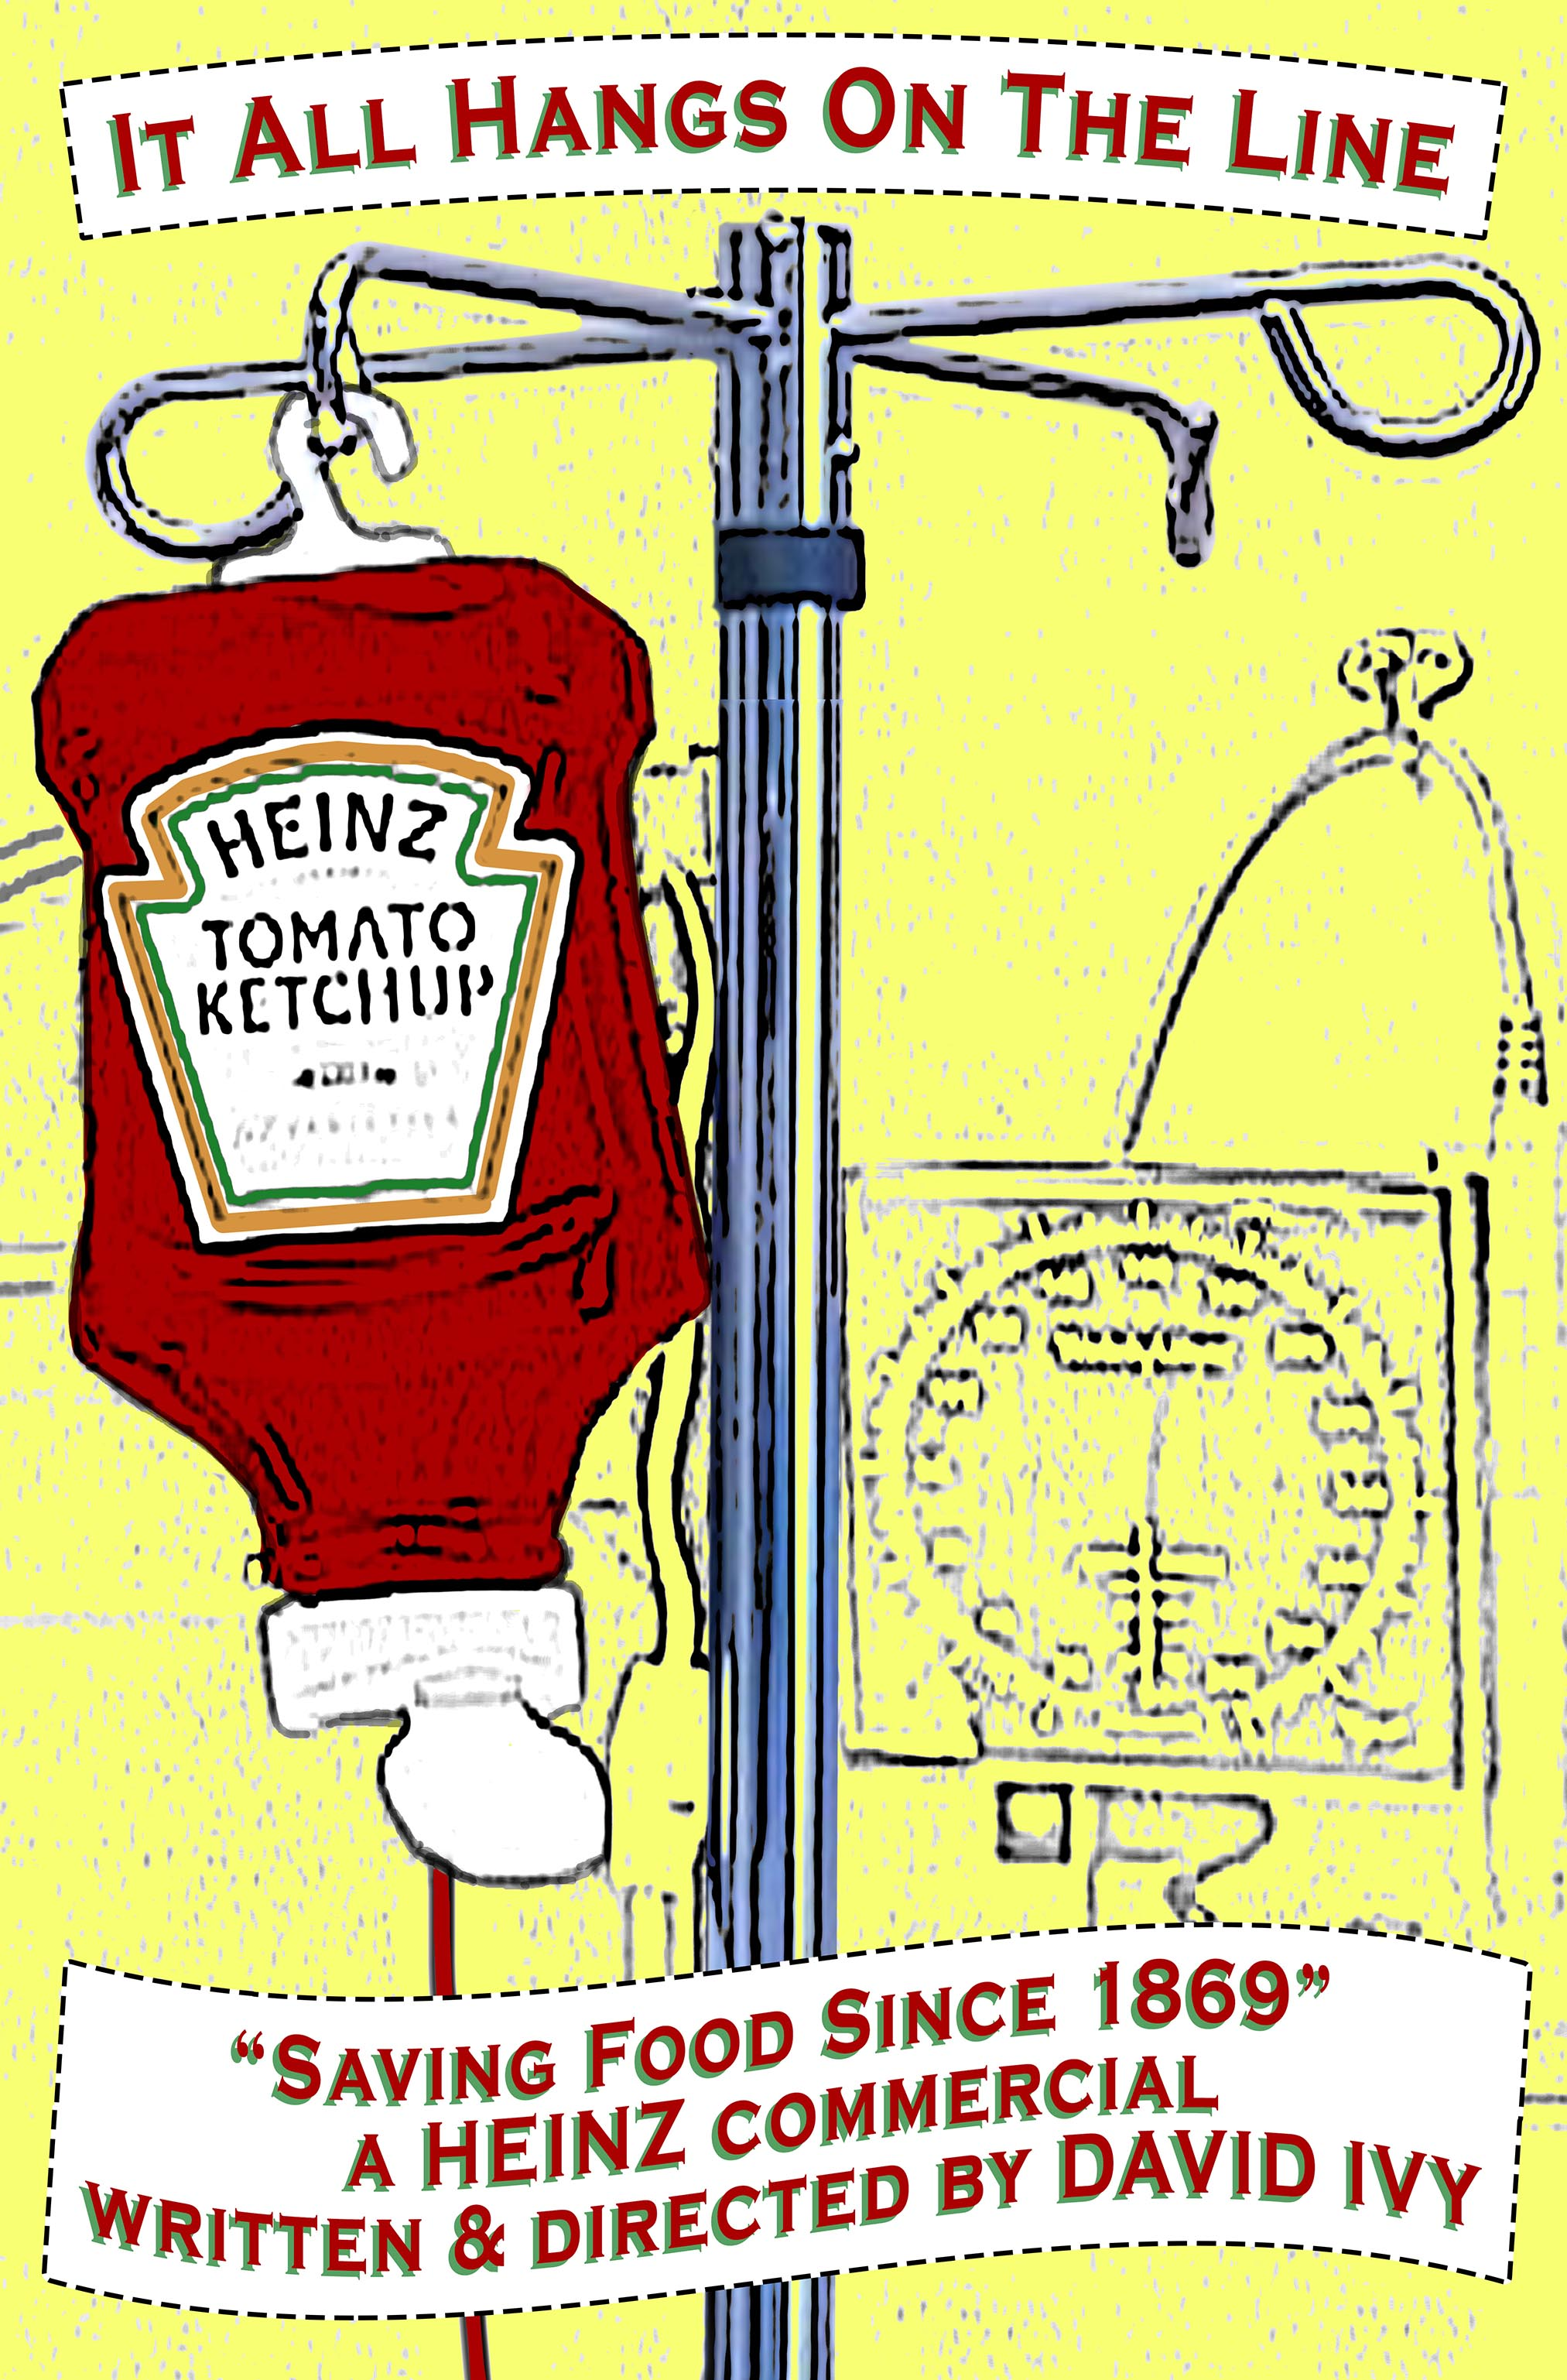 Heinz Commercial - Poster [02_Q6]